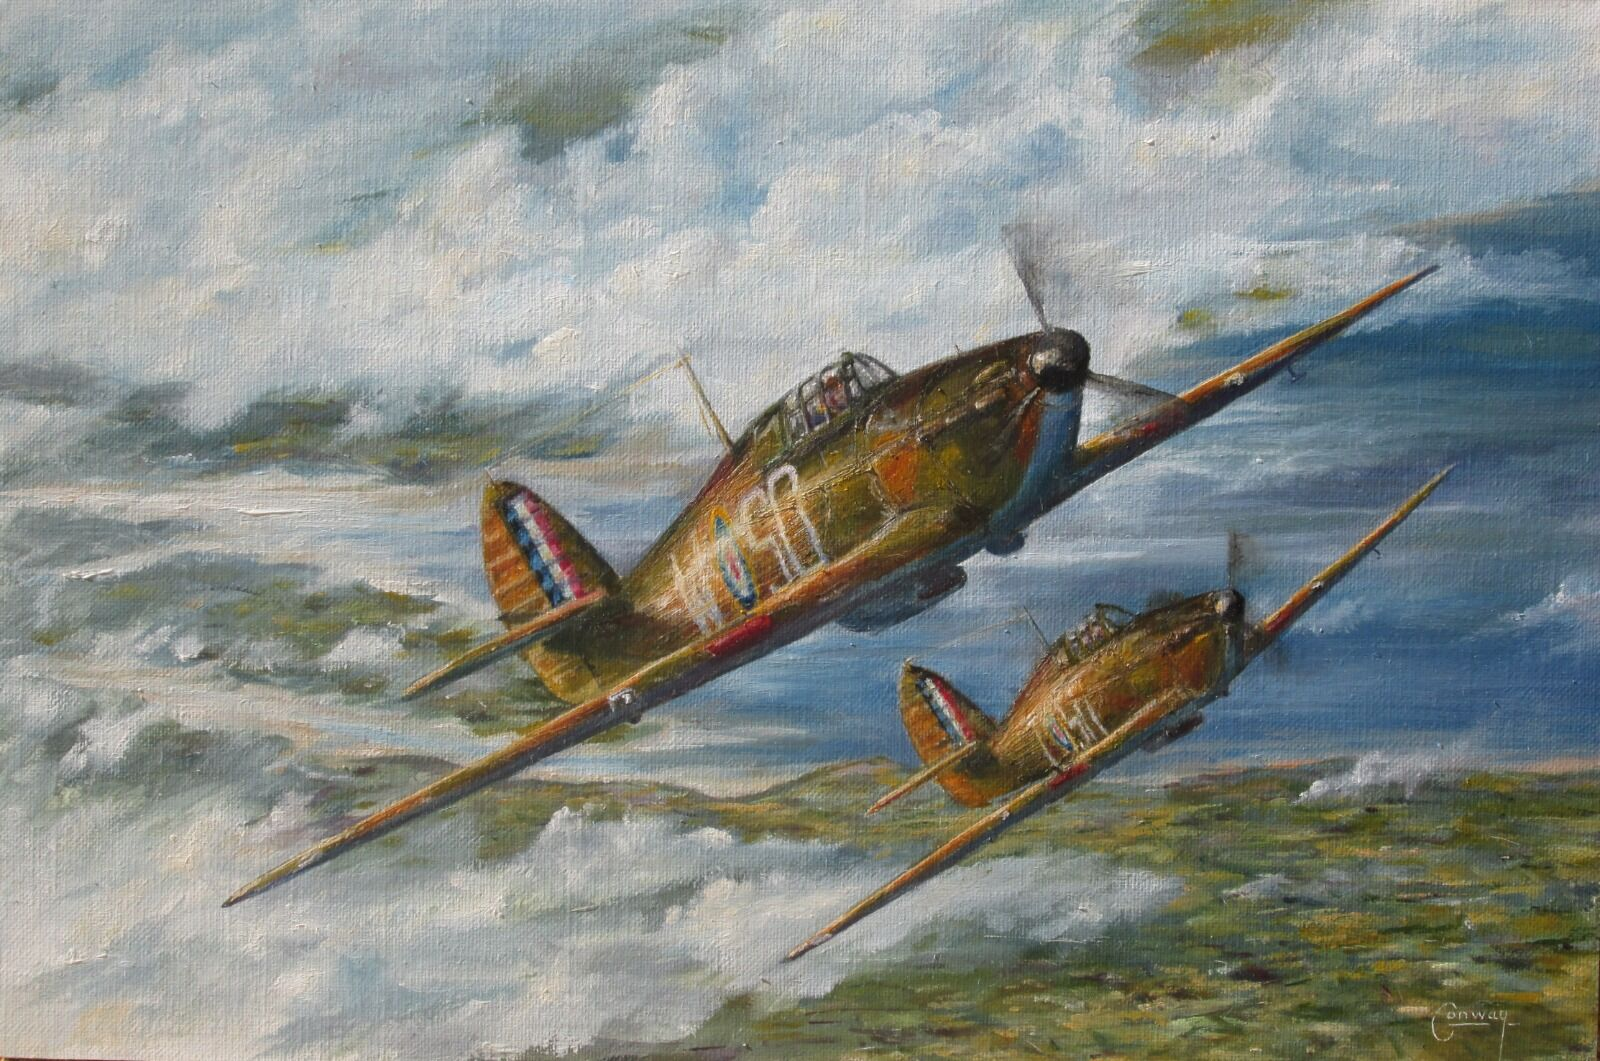 'The Polish Defence' - Hurricanes of F/O Stefan Witorzenc, and P/O Pawel Zenker, No. 501 Squadron climb over the Thames Estuary